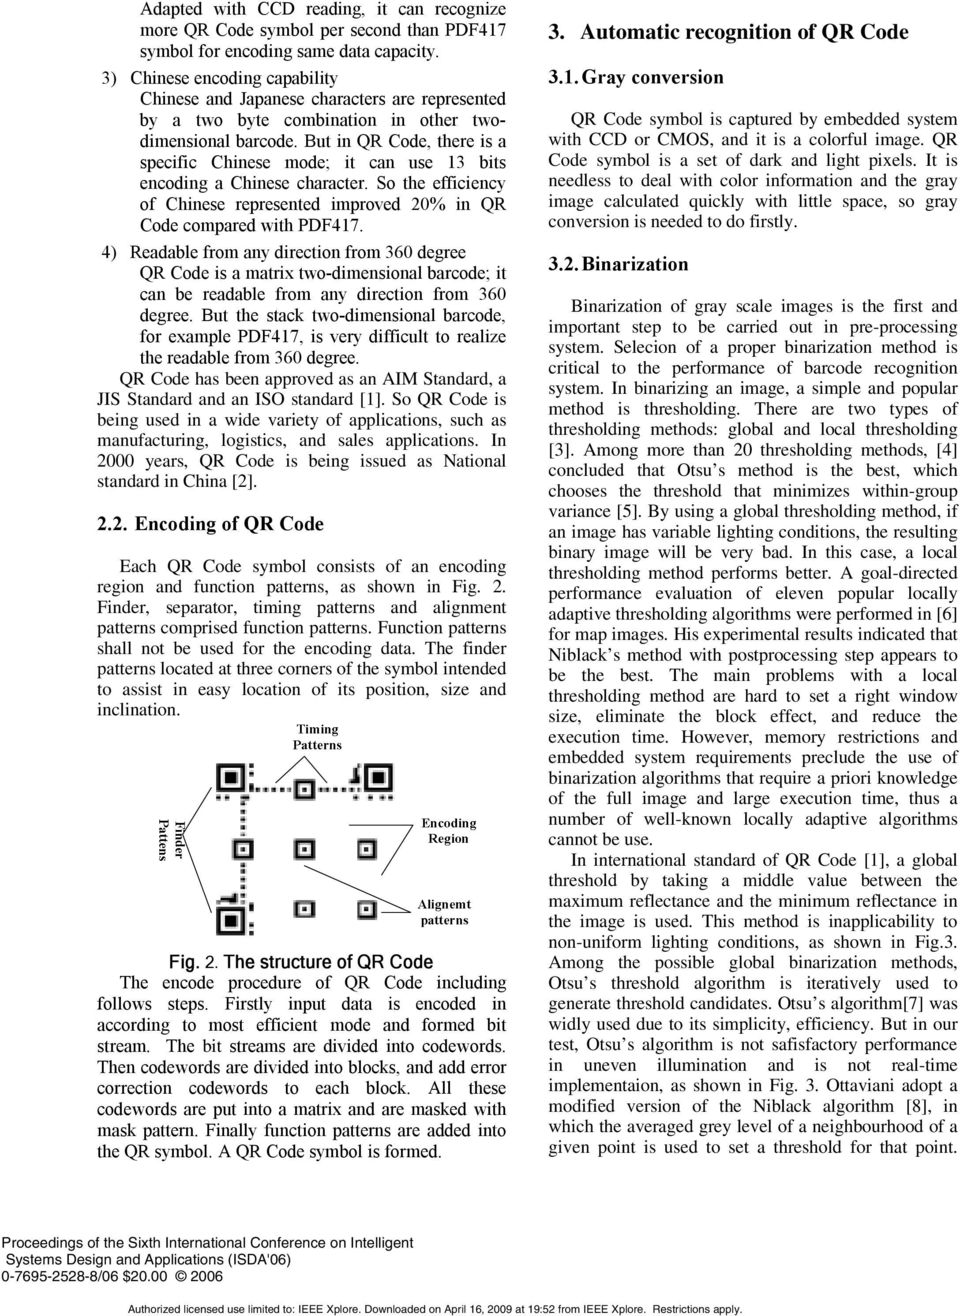 But in QR Code, there is a specific Chinese mode; it can use 13 bits encoding a Chinese character. So the efficiency of Chinese represented improved 20% in QR Code compared with PDF417.